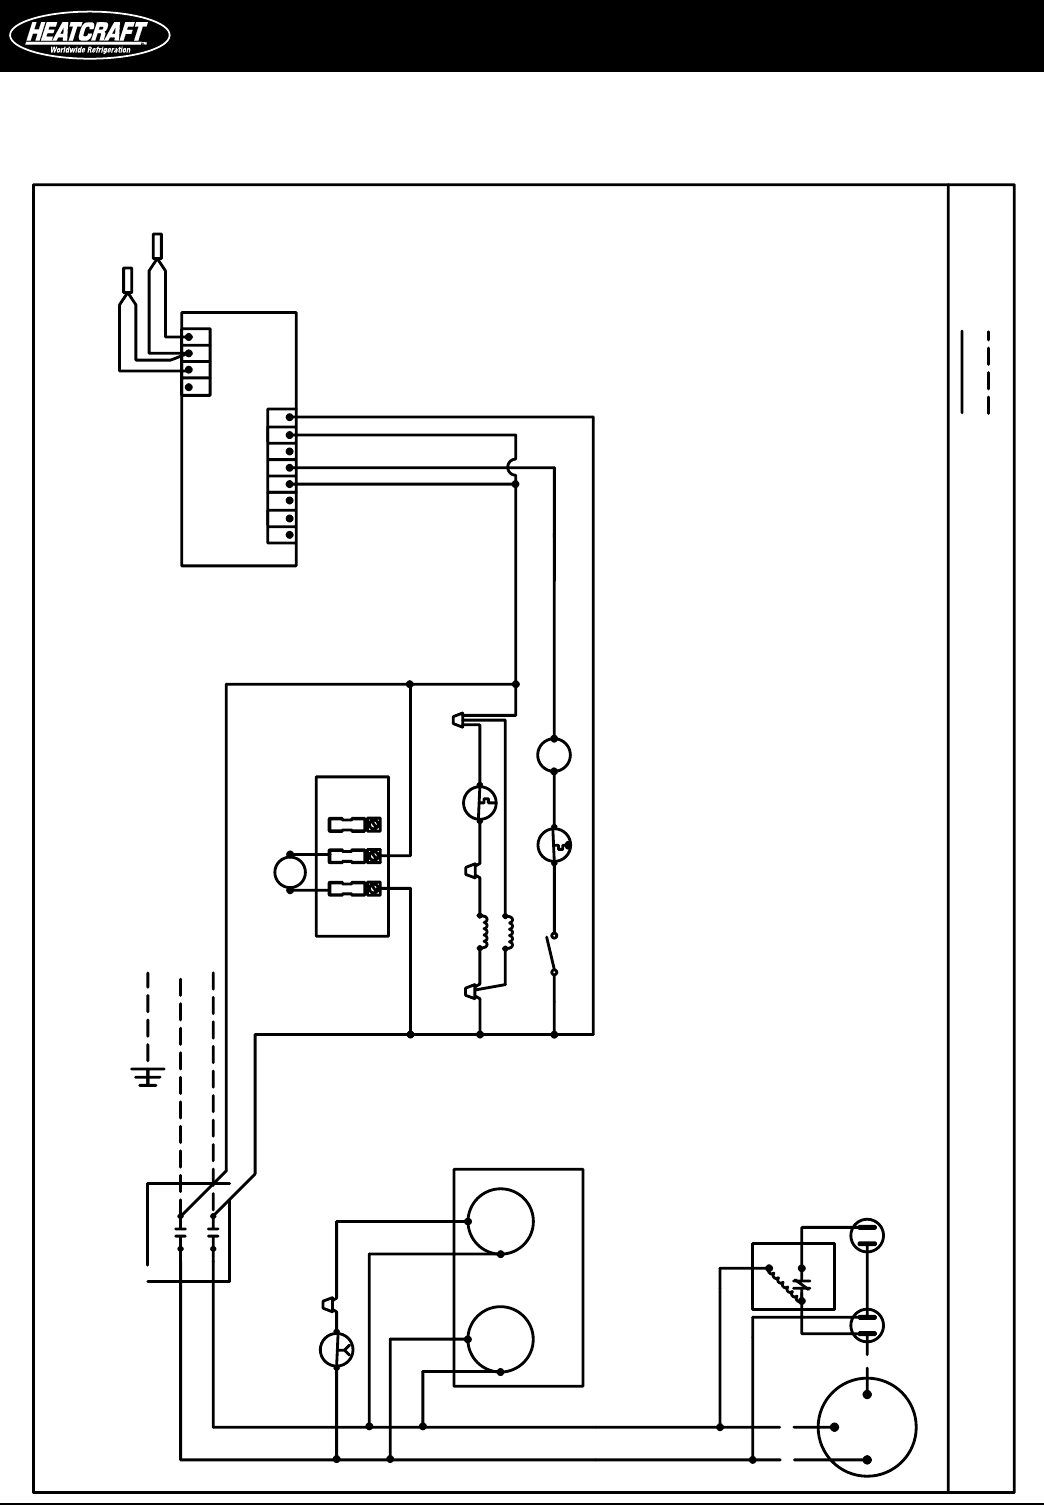 55587f91 c859 def4 0921 730c5709c050 bg10 page 16 of heatcraft refrigeration products refrigerator pro3 user heatcraft freezer wiring diagram at webbmarketing.co